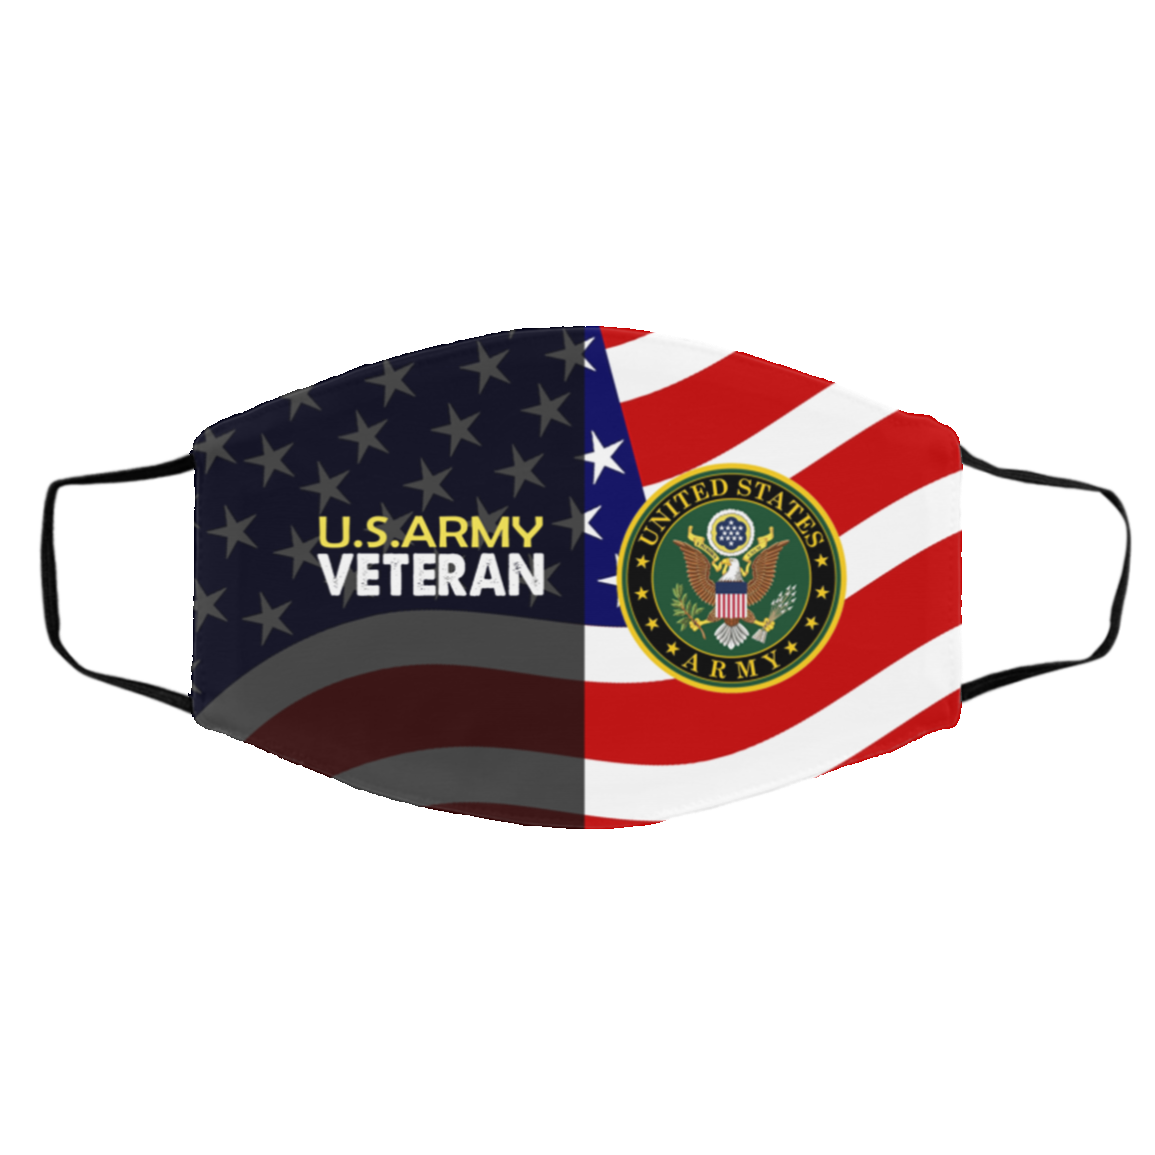 US Army Veteran Washable Reusable Custom Printed Cloth Face Mask Cover - US Veteran Flag Face Mask, White, Cloth Face Cover – Medium/Large